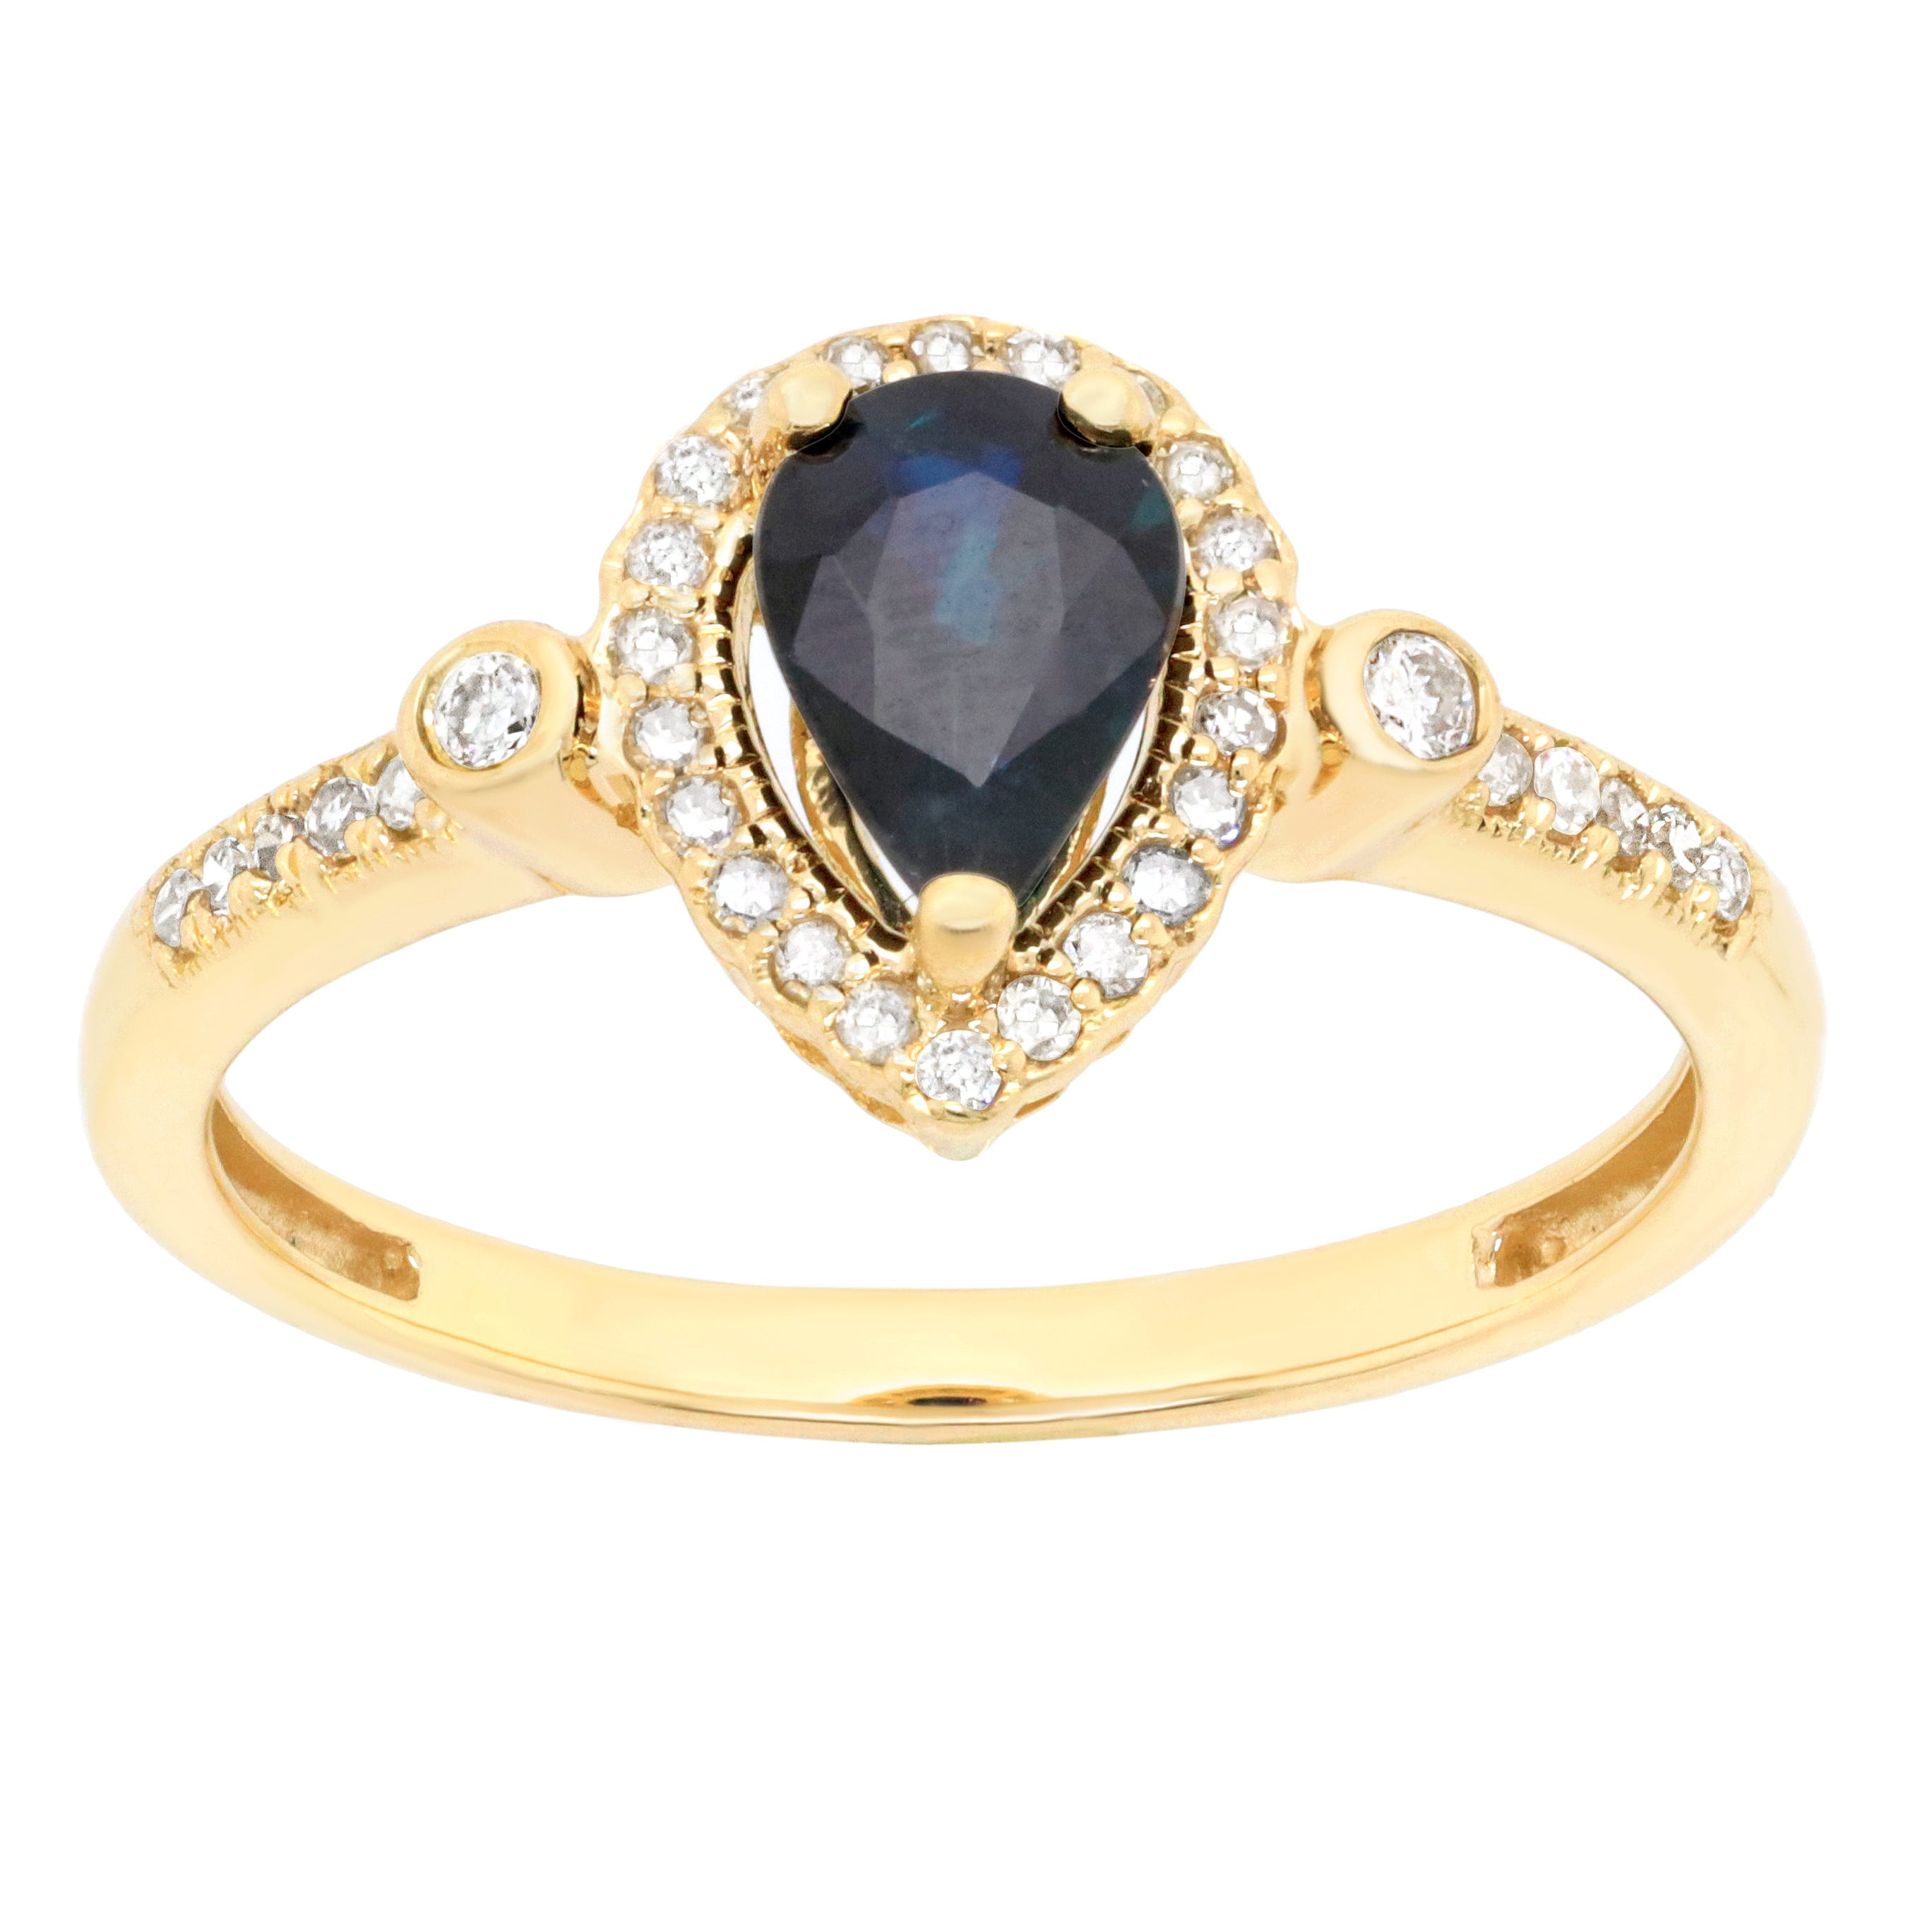 Pear Shape Sapphire and Diamond Ring 1/6ctw in 10k Yellow Gold